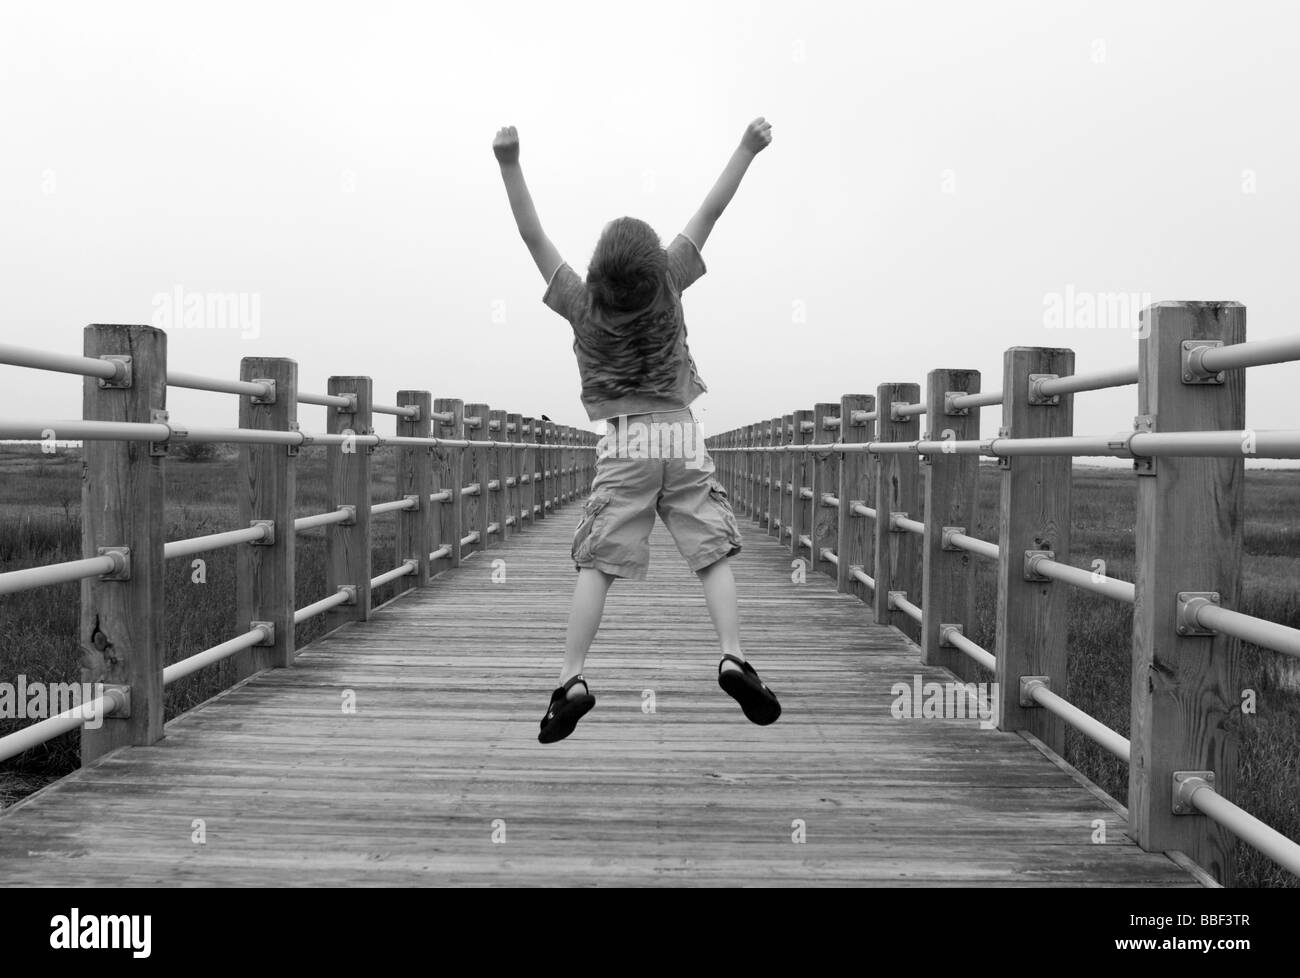 I child jumps with joy along a boardwalk in Milford Connecticut USA - Stock Image